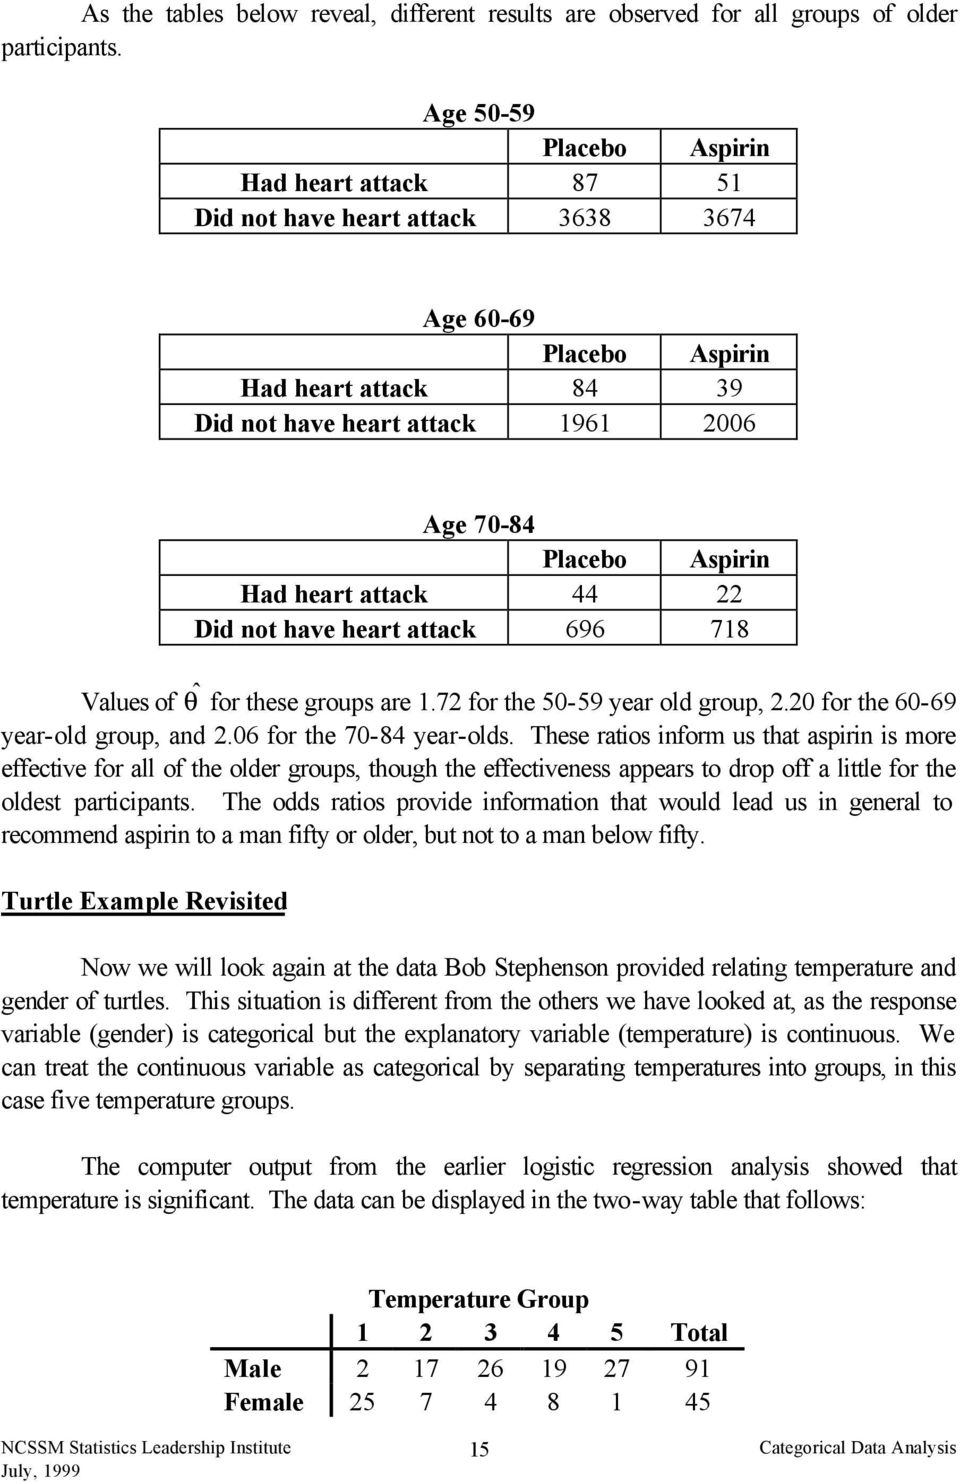 heart attack 44 22 Did not have heart attack 696 718 Values of ˆ θ for these groups are 1.72 for the 50-59 year old group, 2.20 for the 60-69 year-old group, and 2.06 for the 70-84 year-olds.